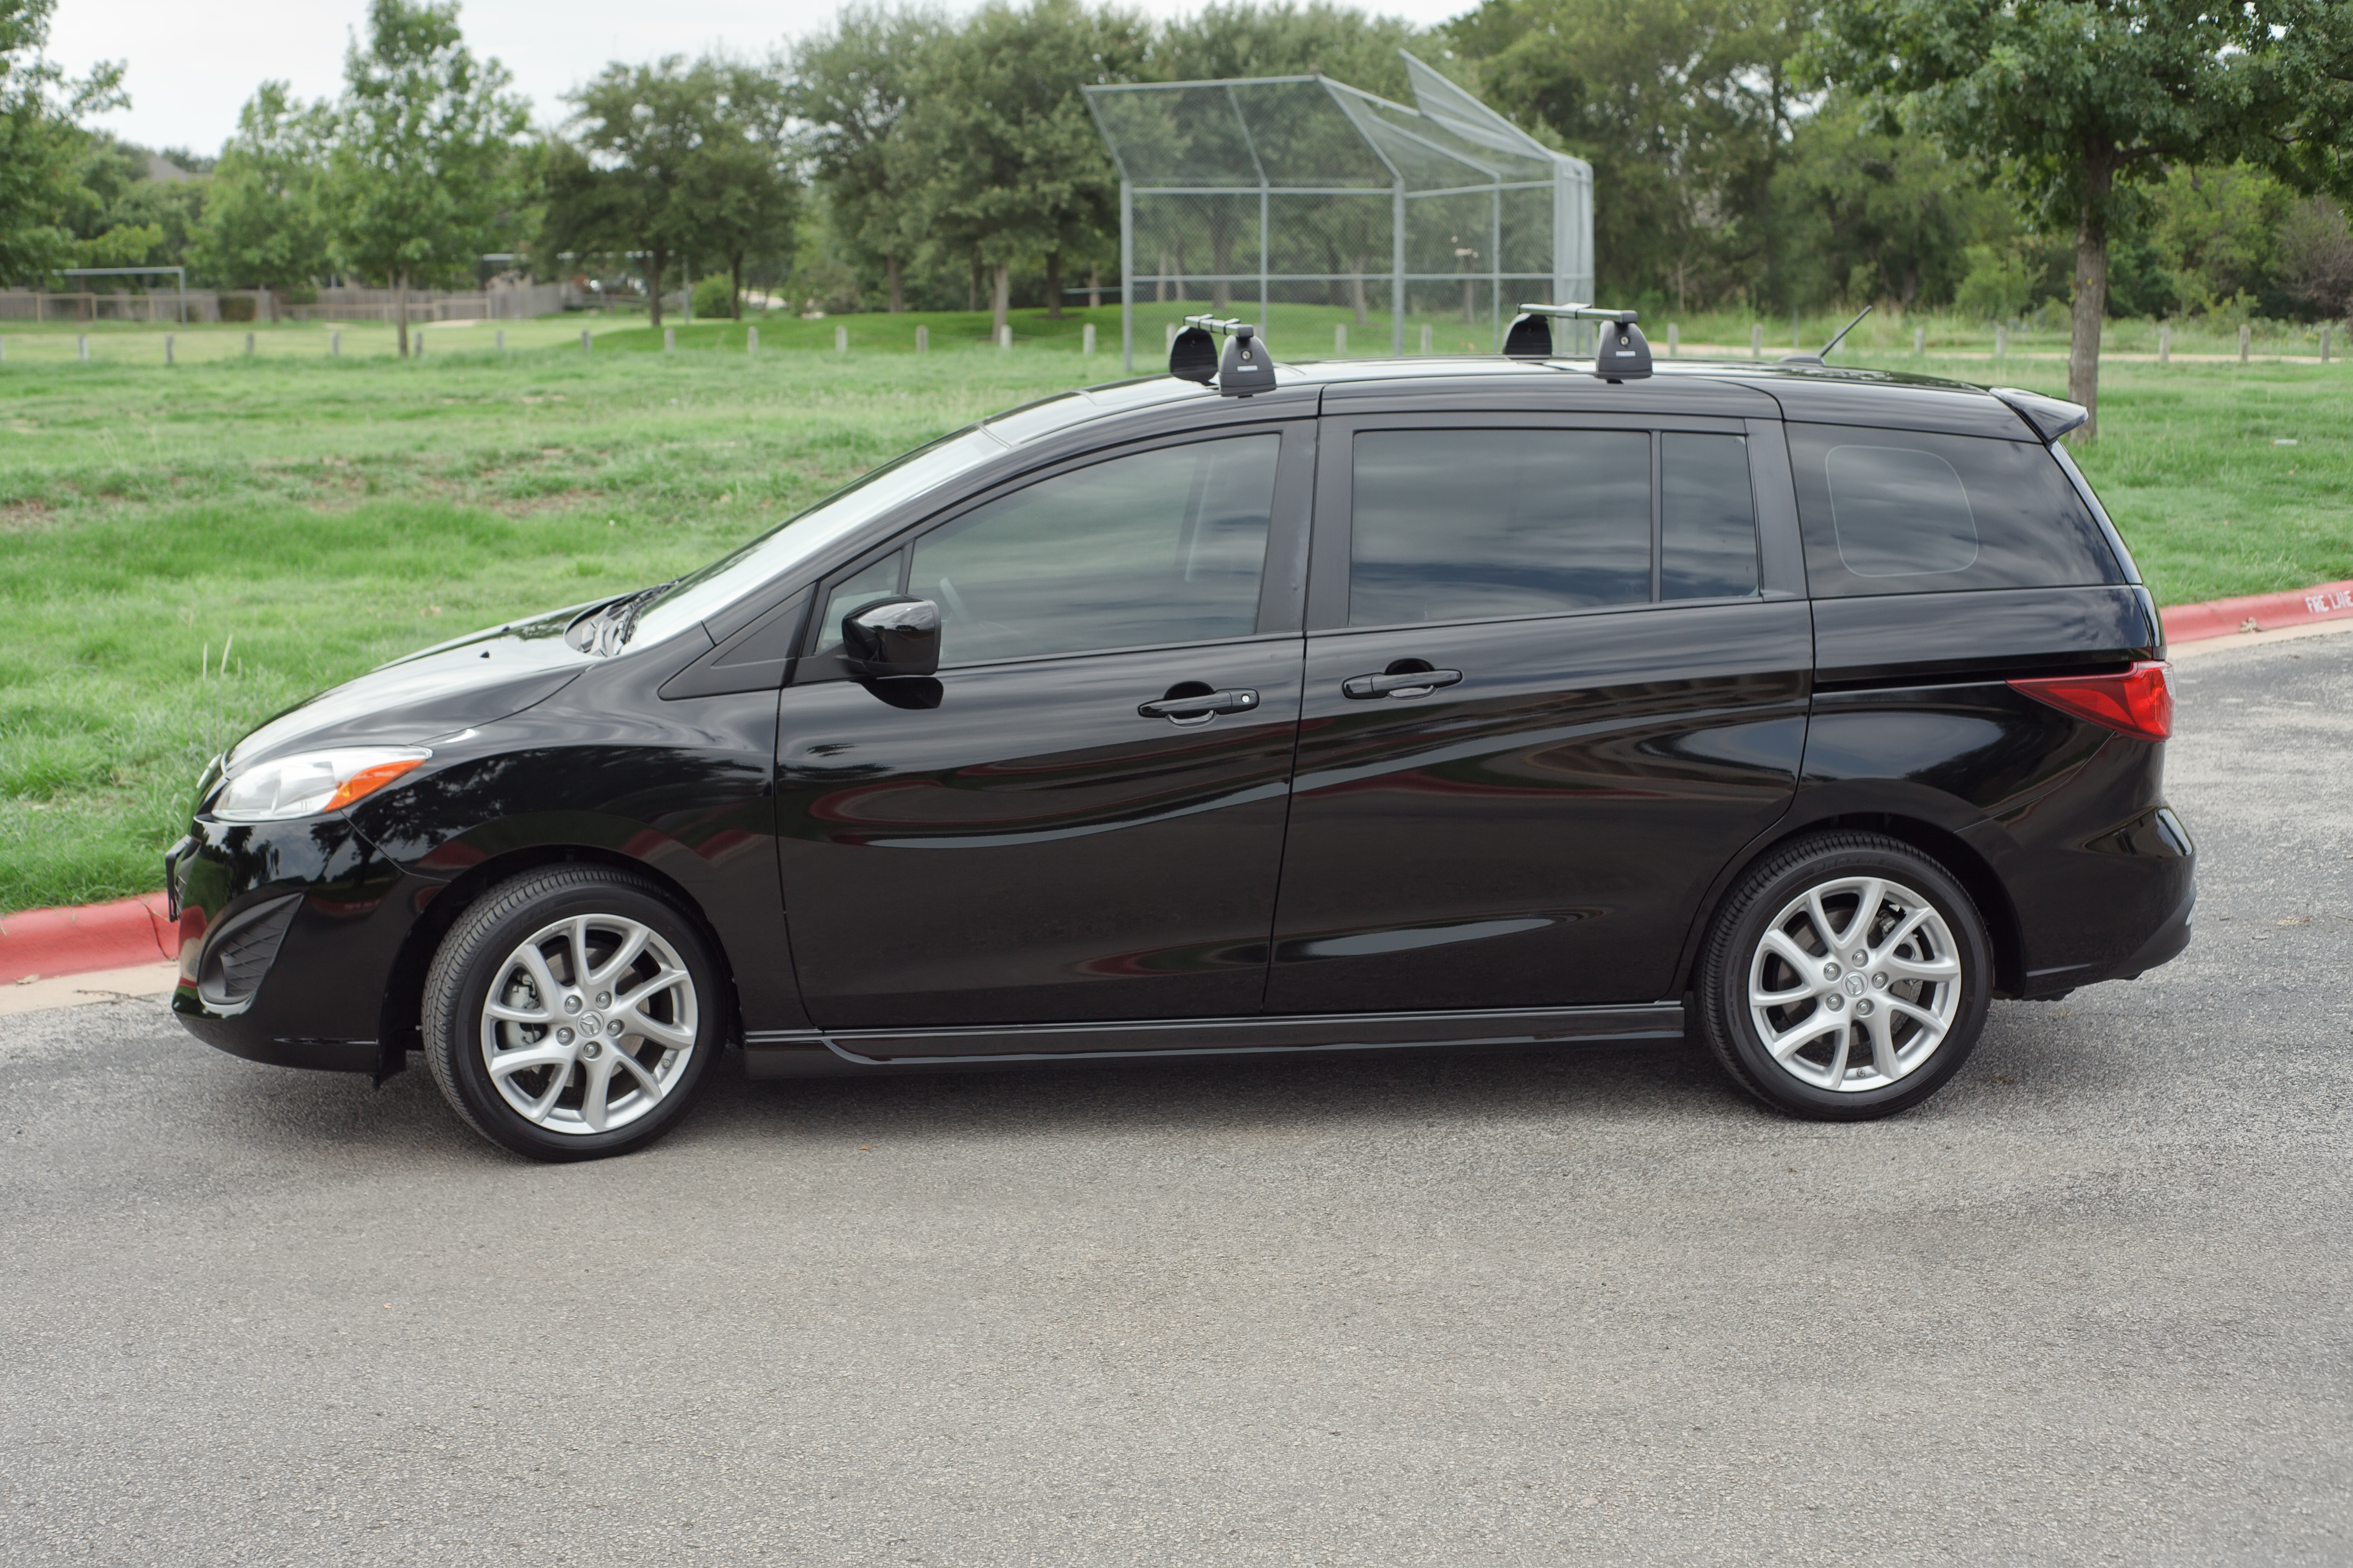 Our new family car: 2012 Mazda 5 Grand Touring | Flickr - Photo ...